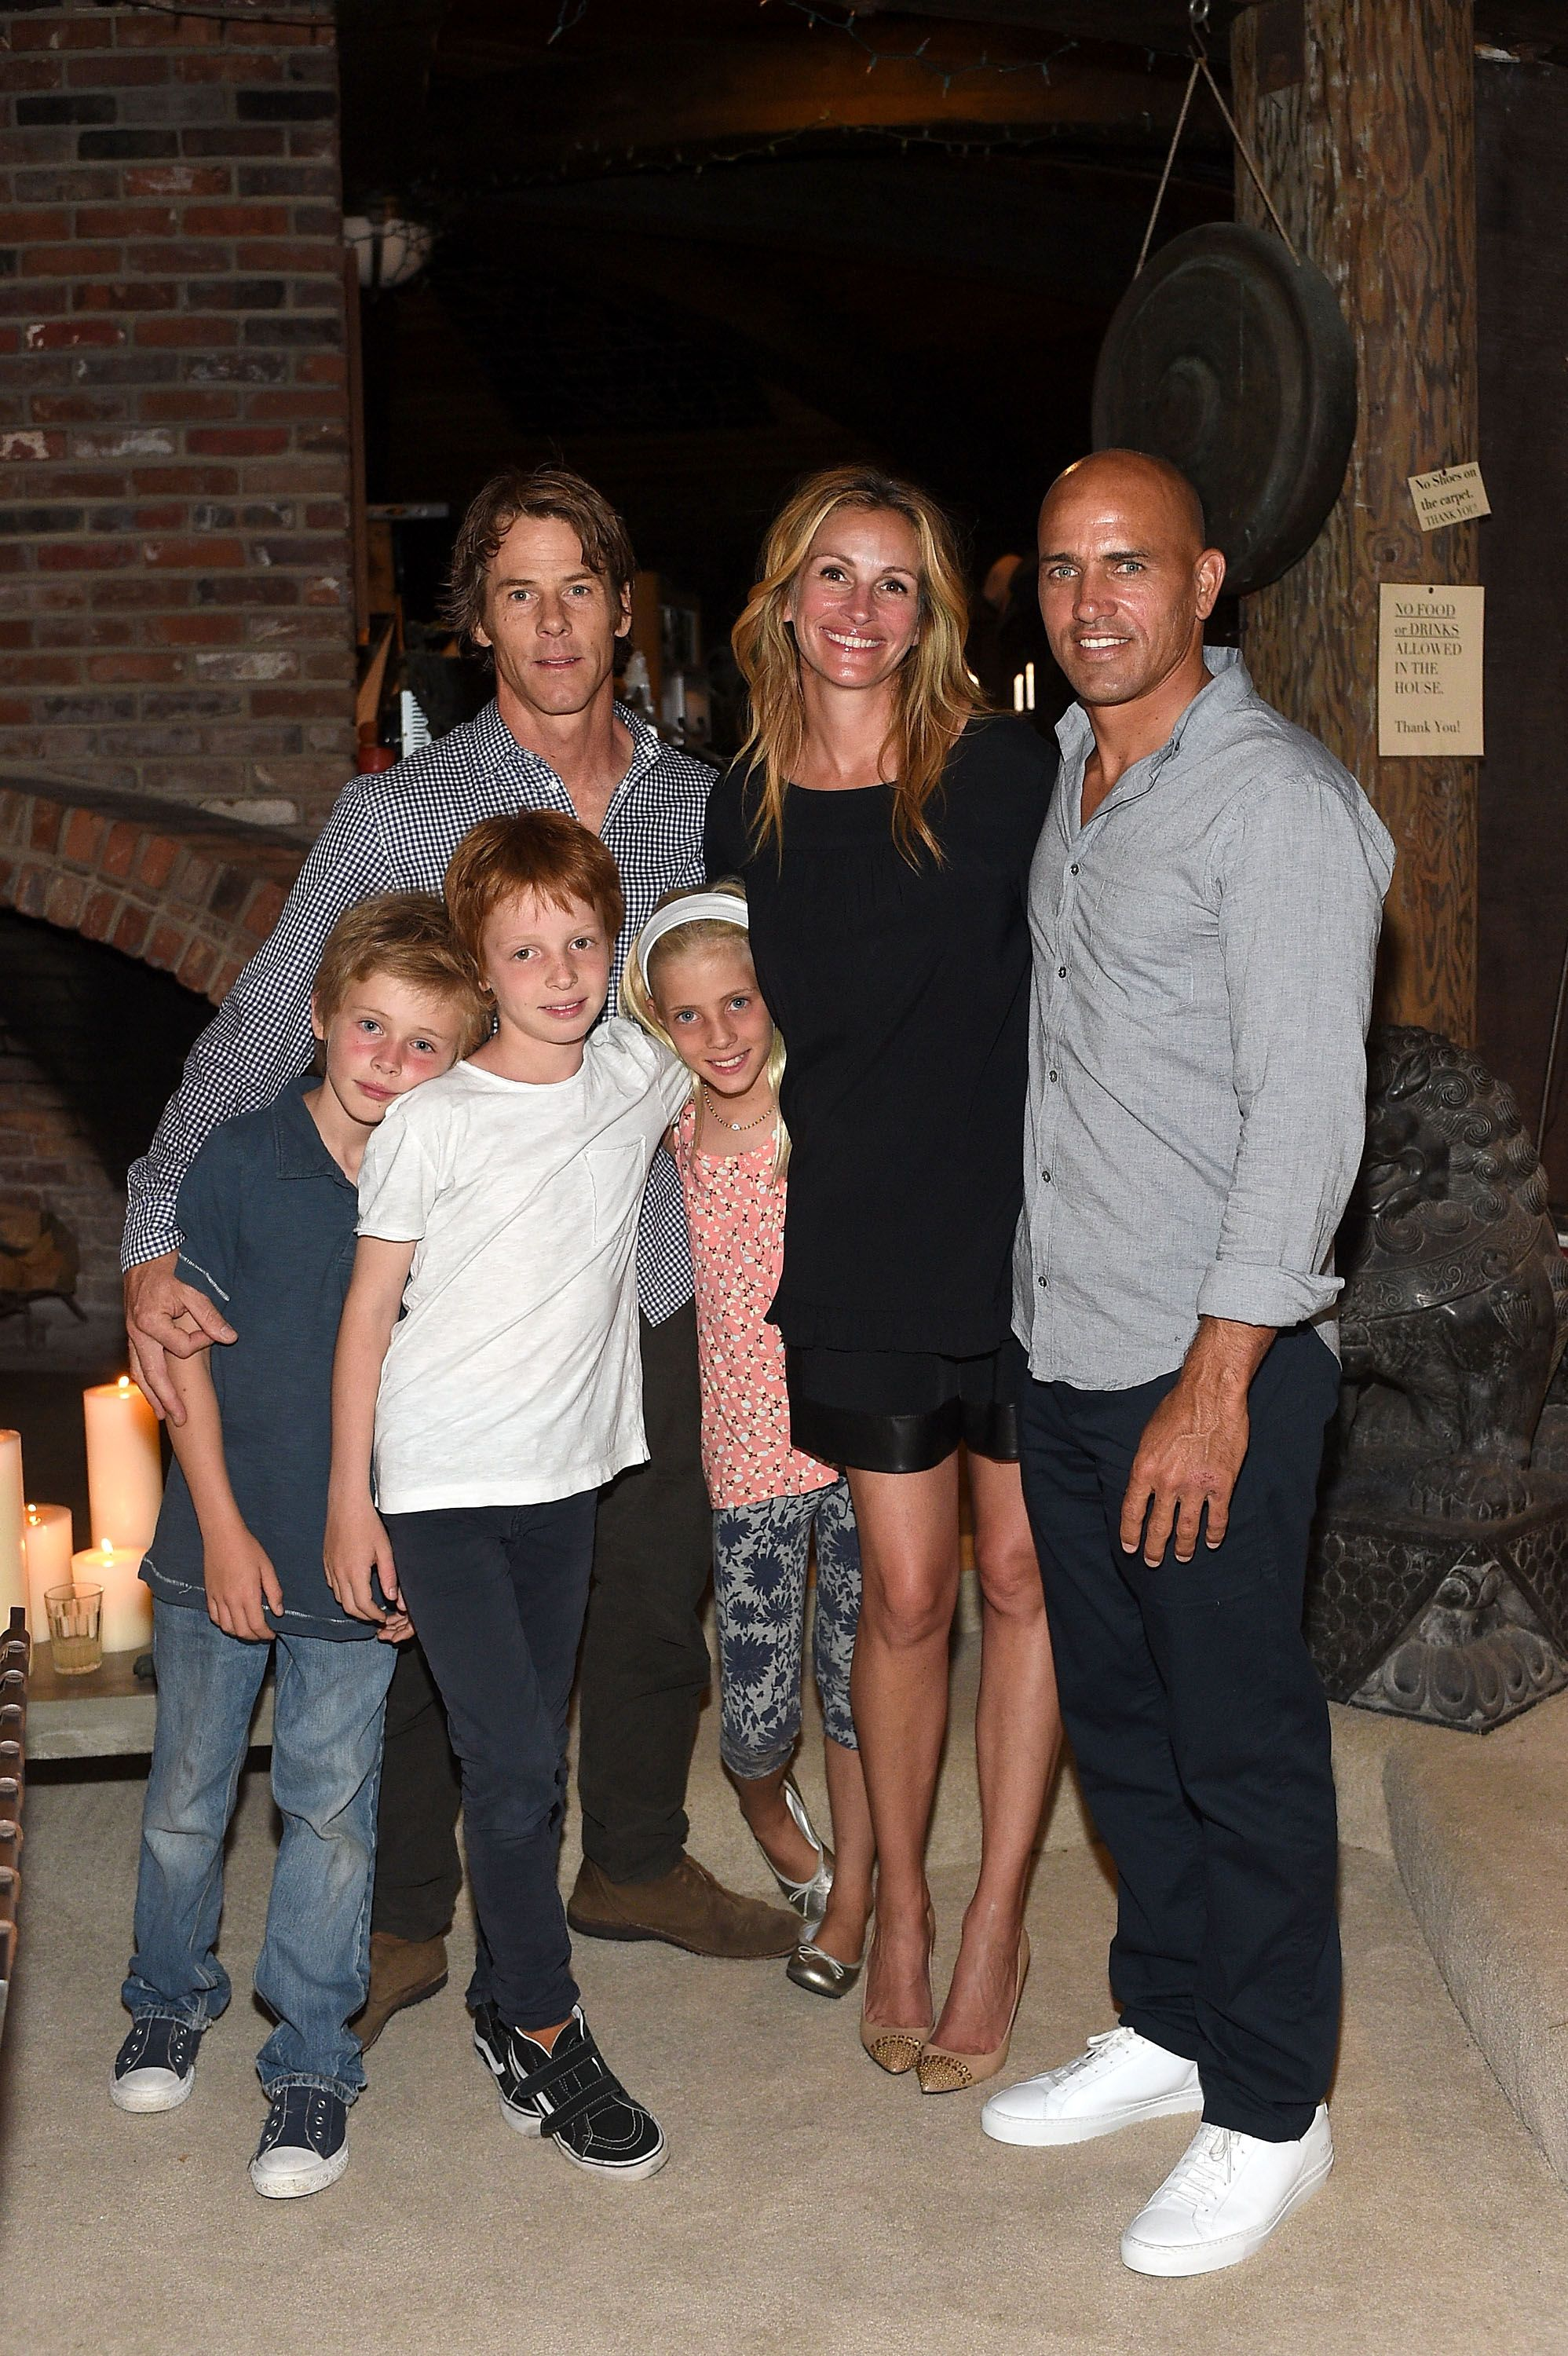 Daniel Moder, Julia Roberts, et les enfants Phinnaeus, Henry, Hazel Moder, et Kelly Slater, le 29 août 2015 à | Photo : Getty Images